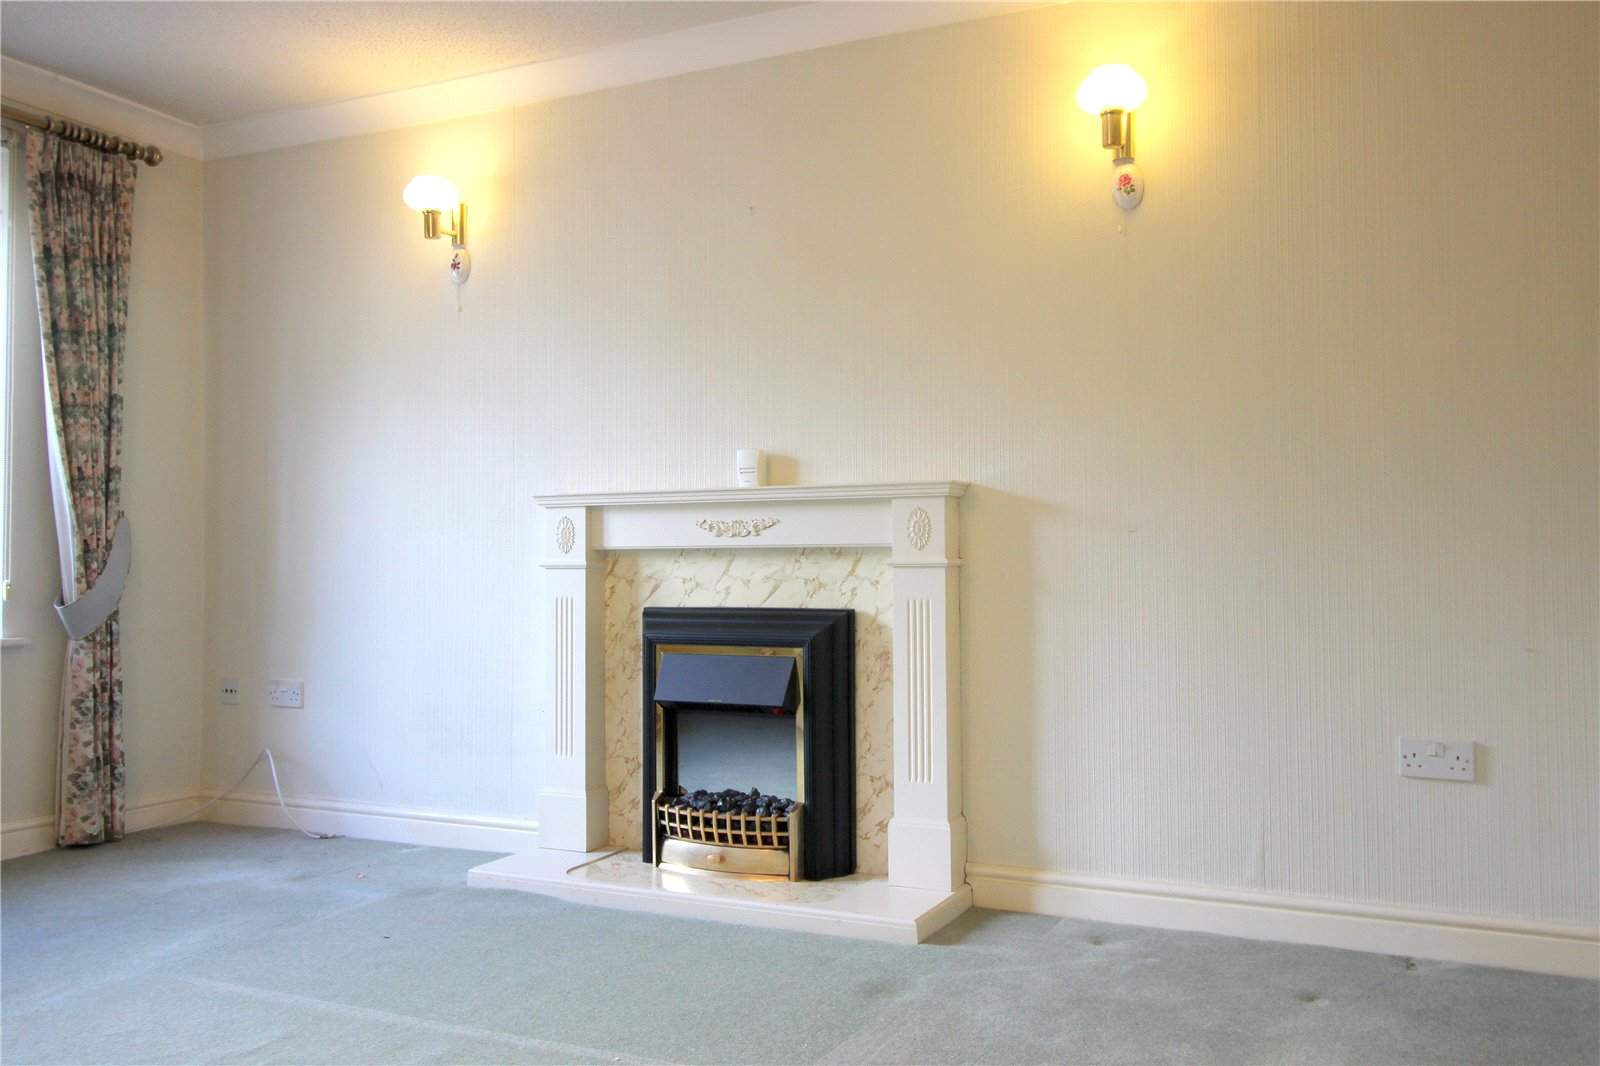 Cj Hole Cirencester 2 Bedroom Flat For Sale In Barclay